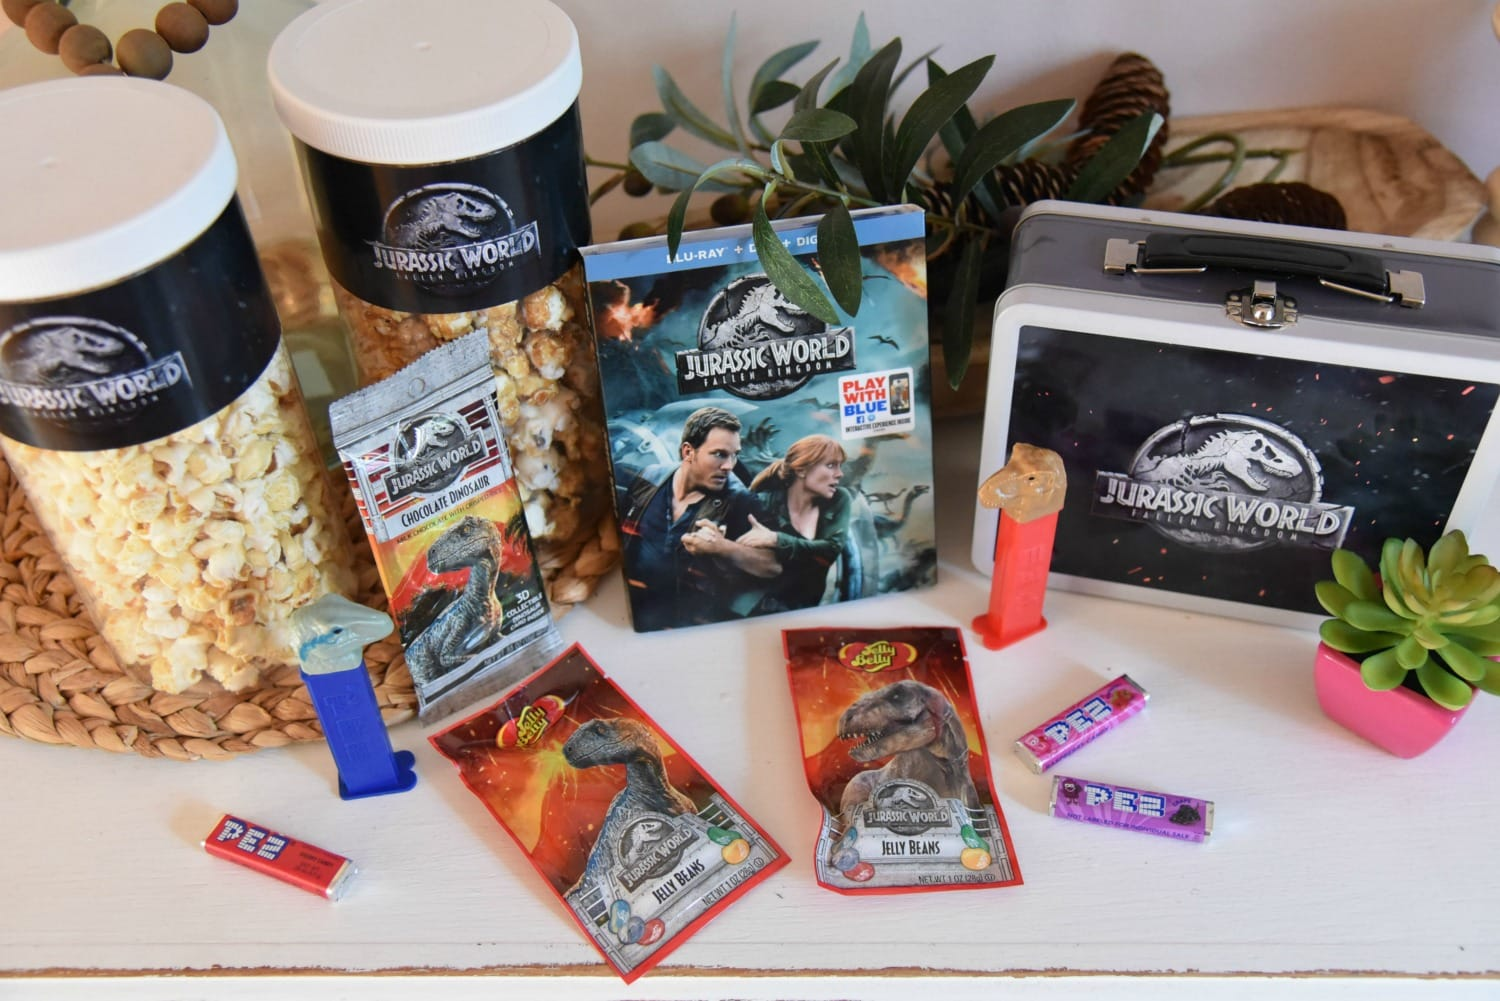 Jurassic world viewing party snacks